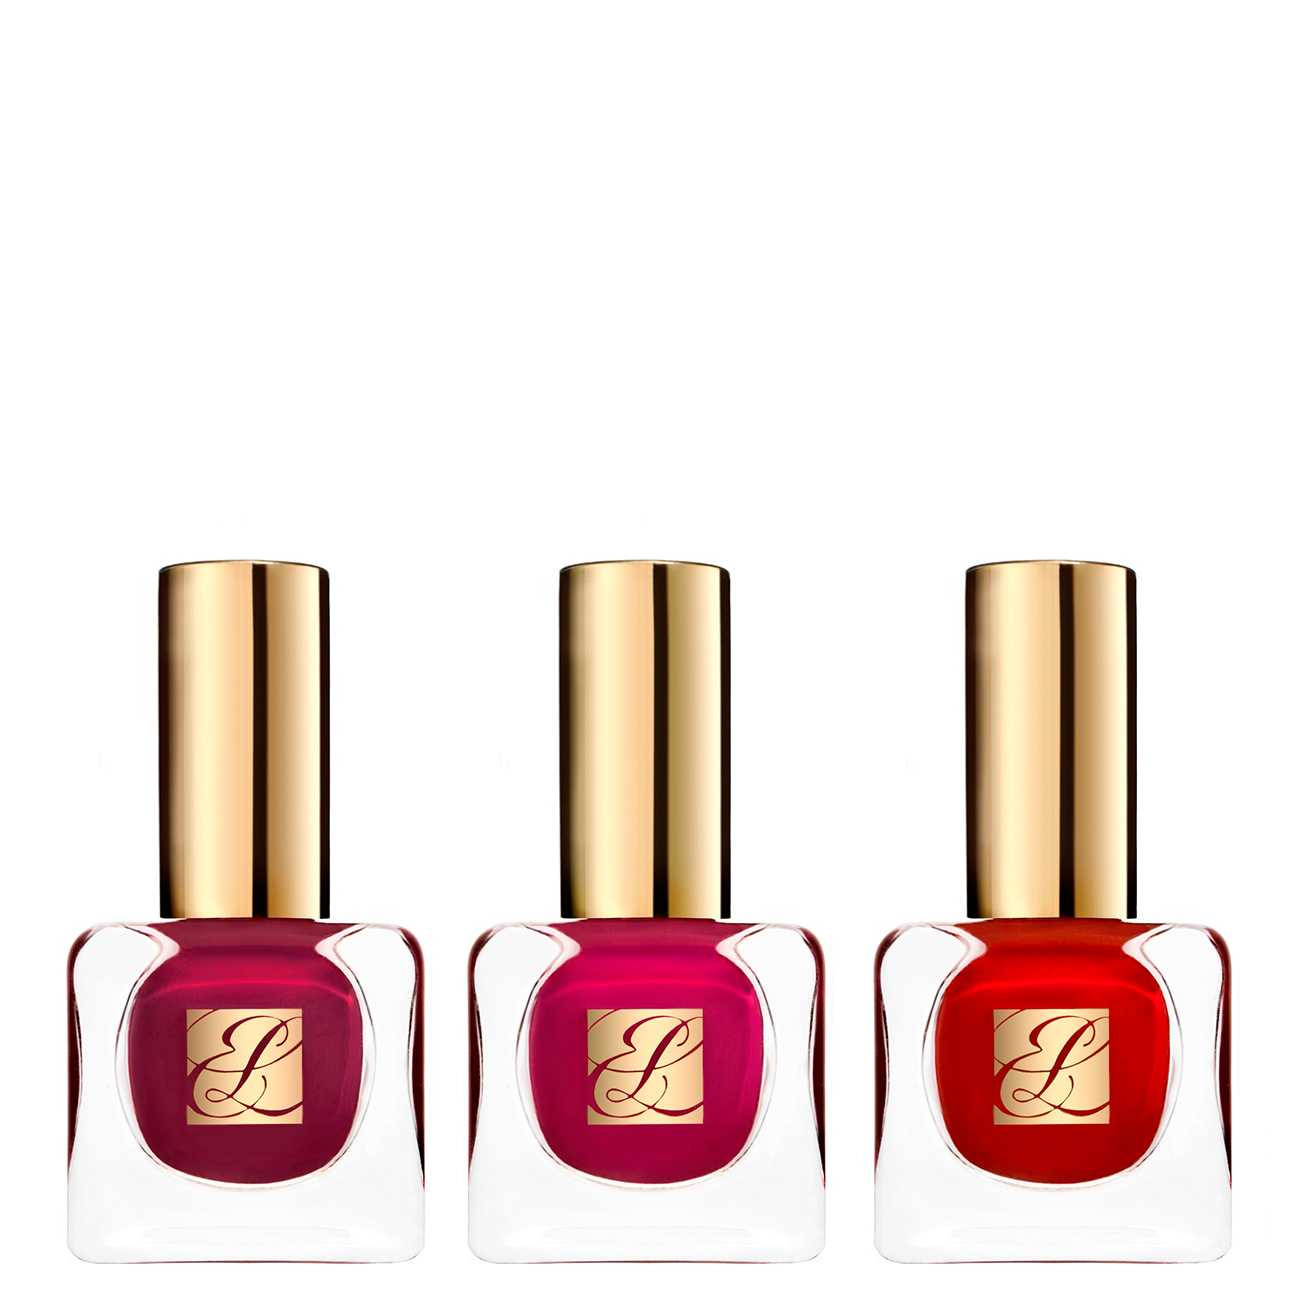 Pure Color Nail Lacquer Set 27 Ml Estée Lauder imagine 2021 bestvalue.eu